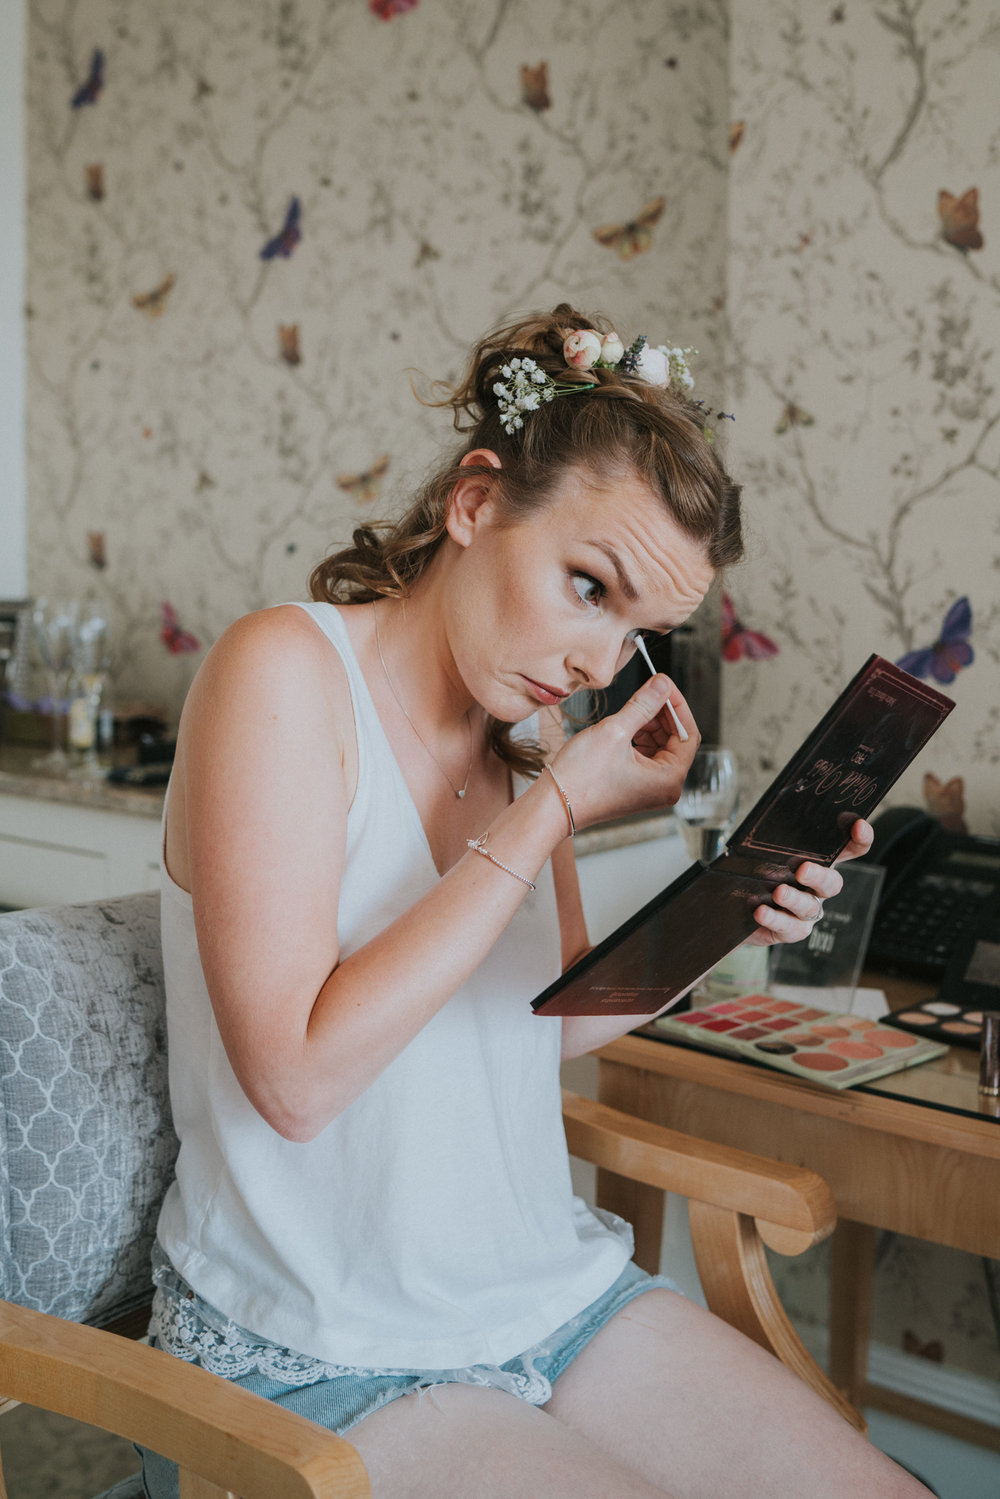 Grace-Elizabeth-Georgie-Amalaketu-Firstsite-Colchester-Essex-Boho-Buddhist-Wedding-Alternative-Wedding-Photography-Essex (12 of 100).jpg